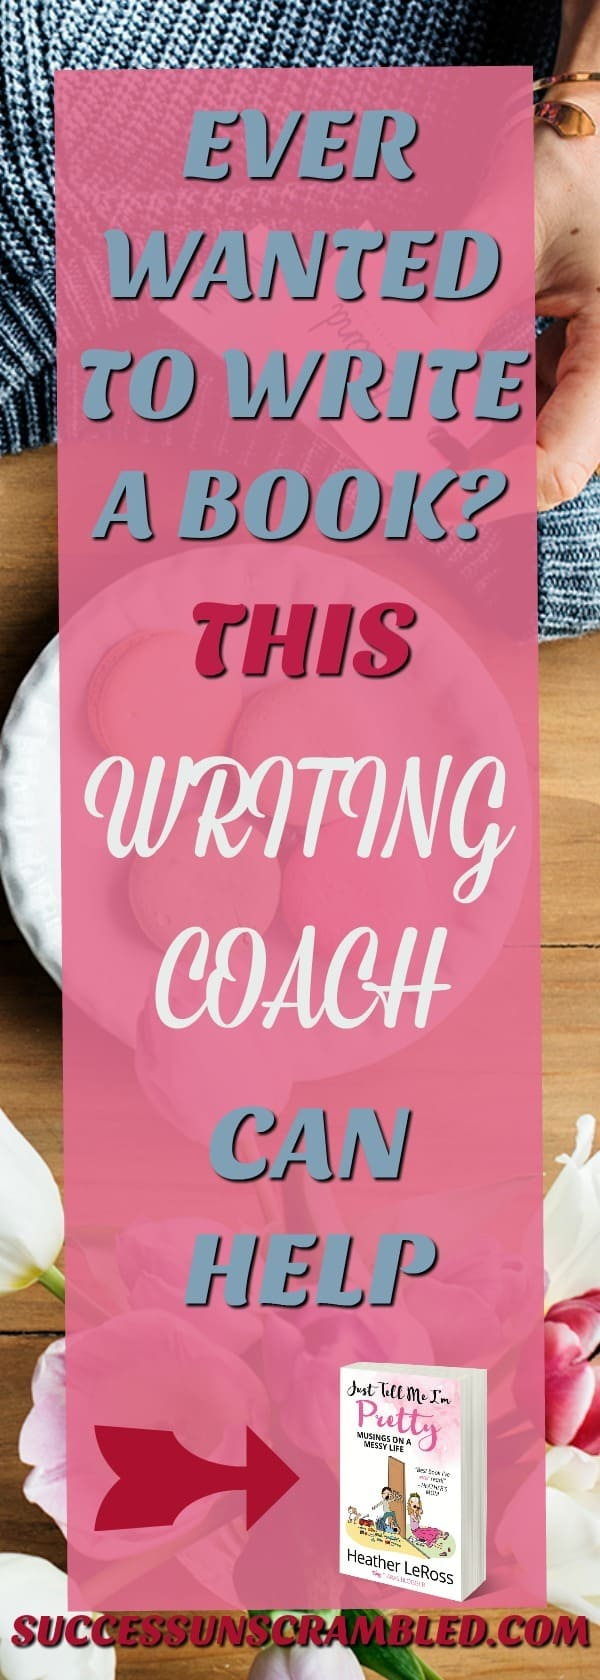 Writing coach - ever wanted to write a book - pin-flat